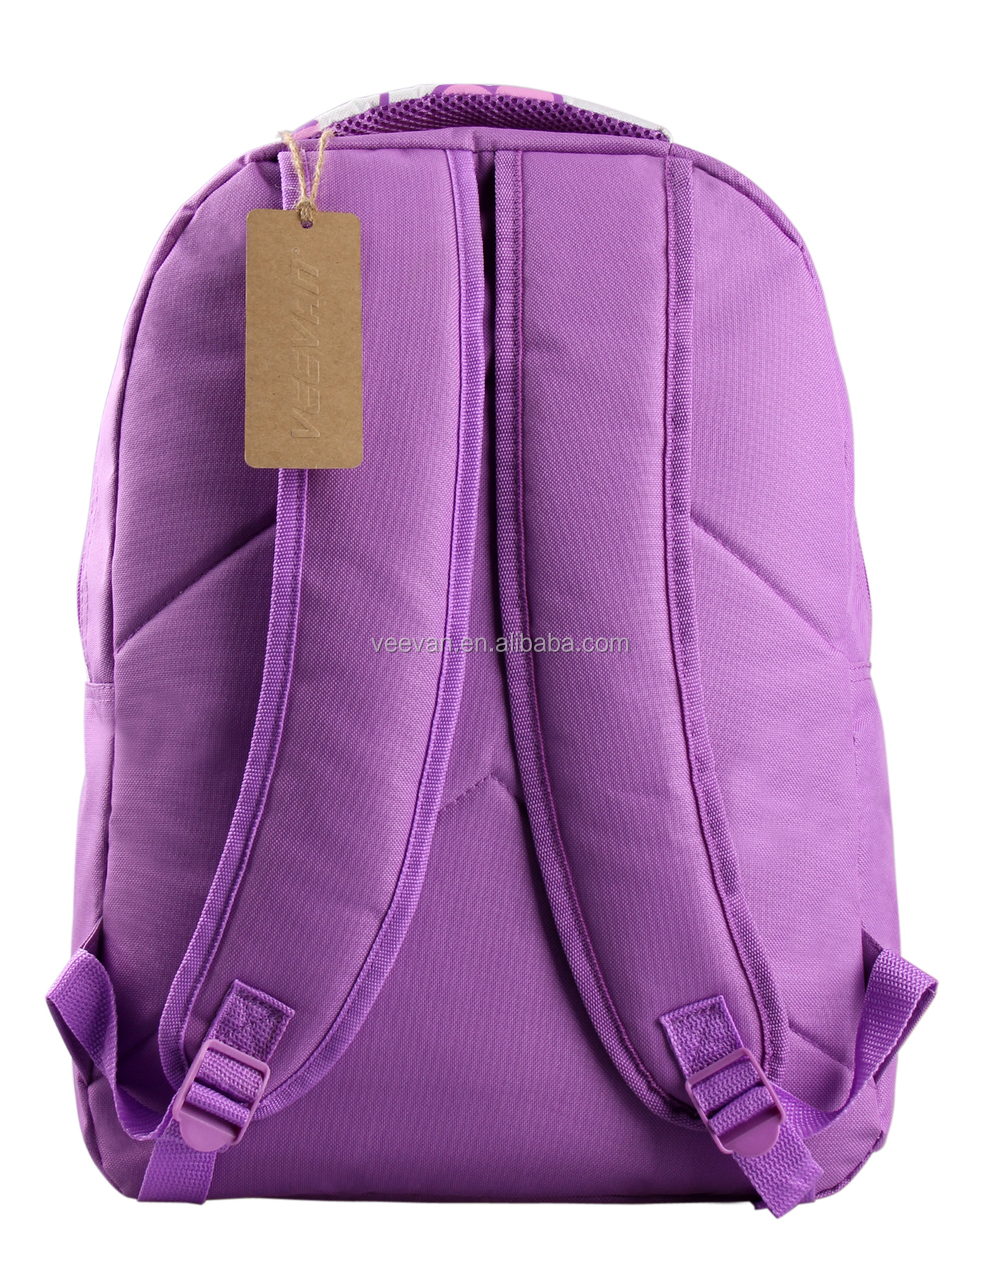 School bag hs code - 2016cute Latest Backpack School Bags Brand Name School Bags Girls School Bags